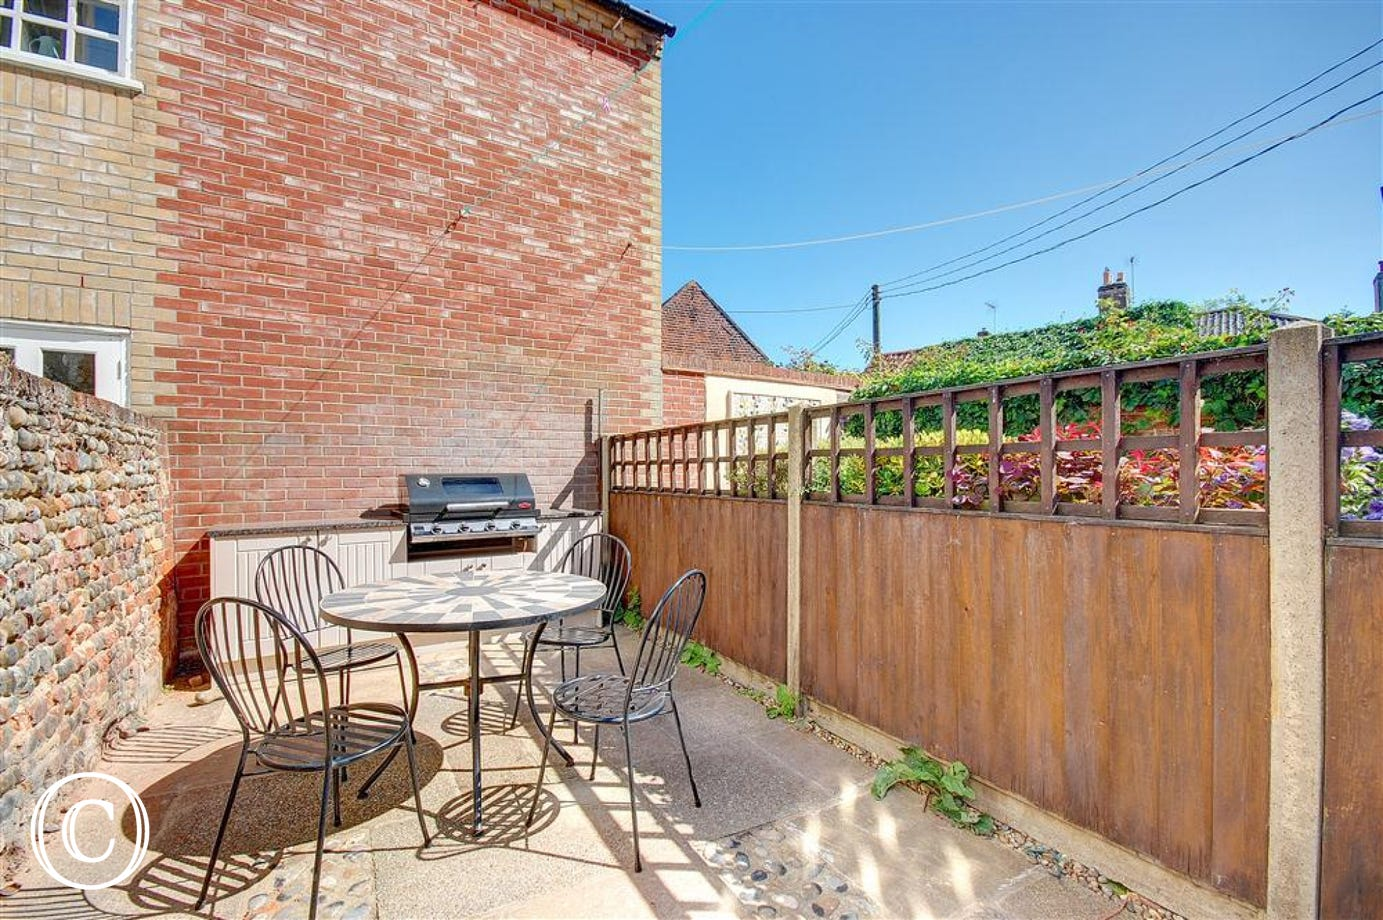 Enjoy the Southwold sunshine in this courtyard garden with added bonus of fitted BBQ kitchen.